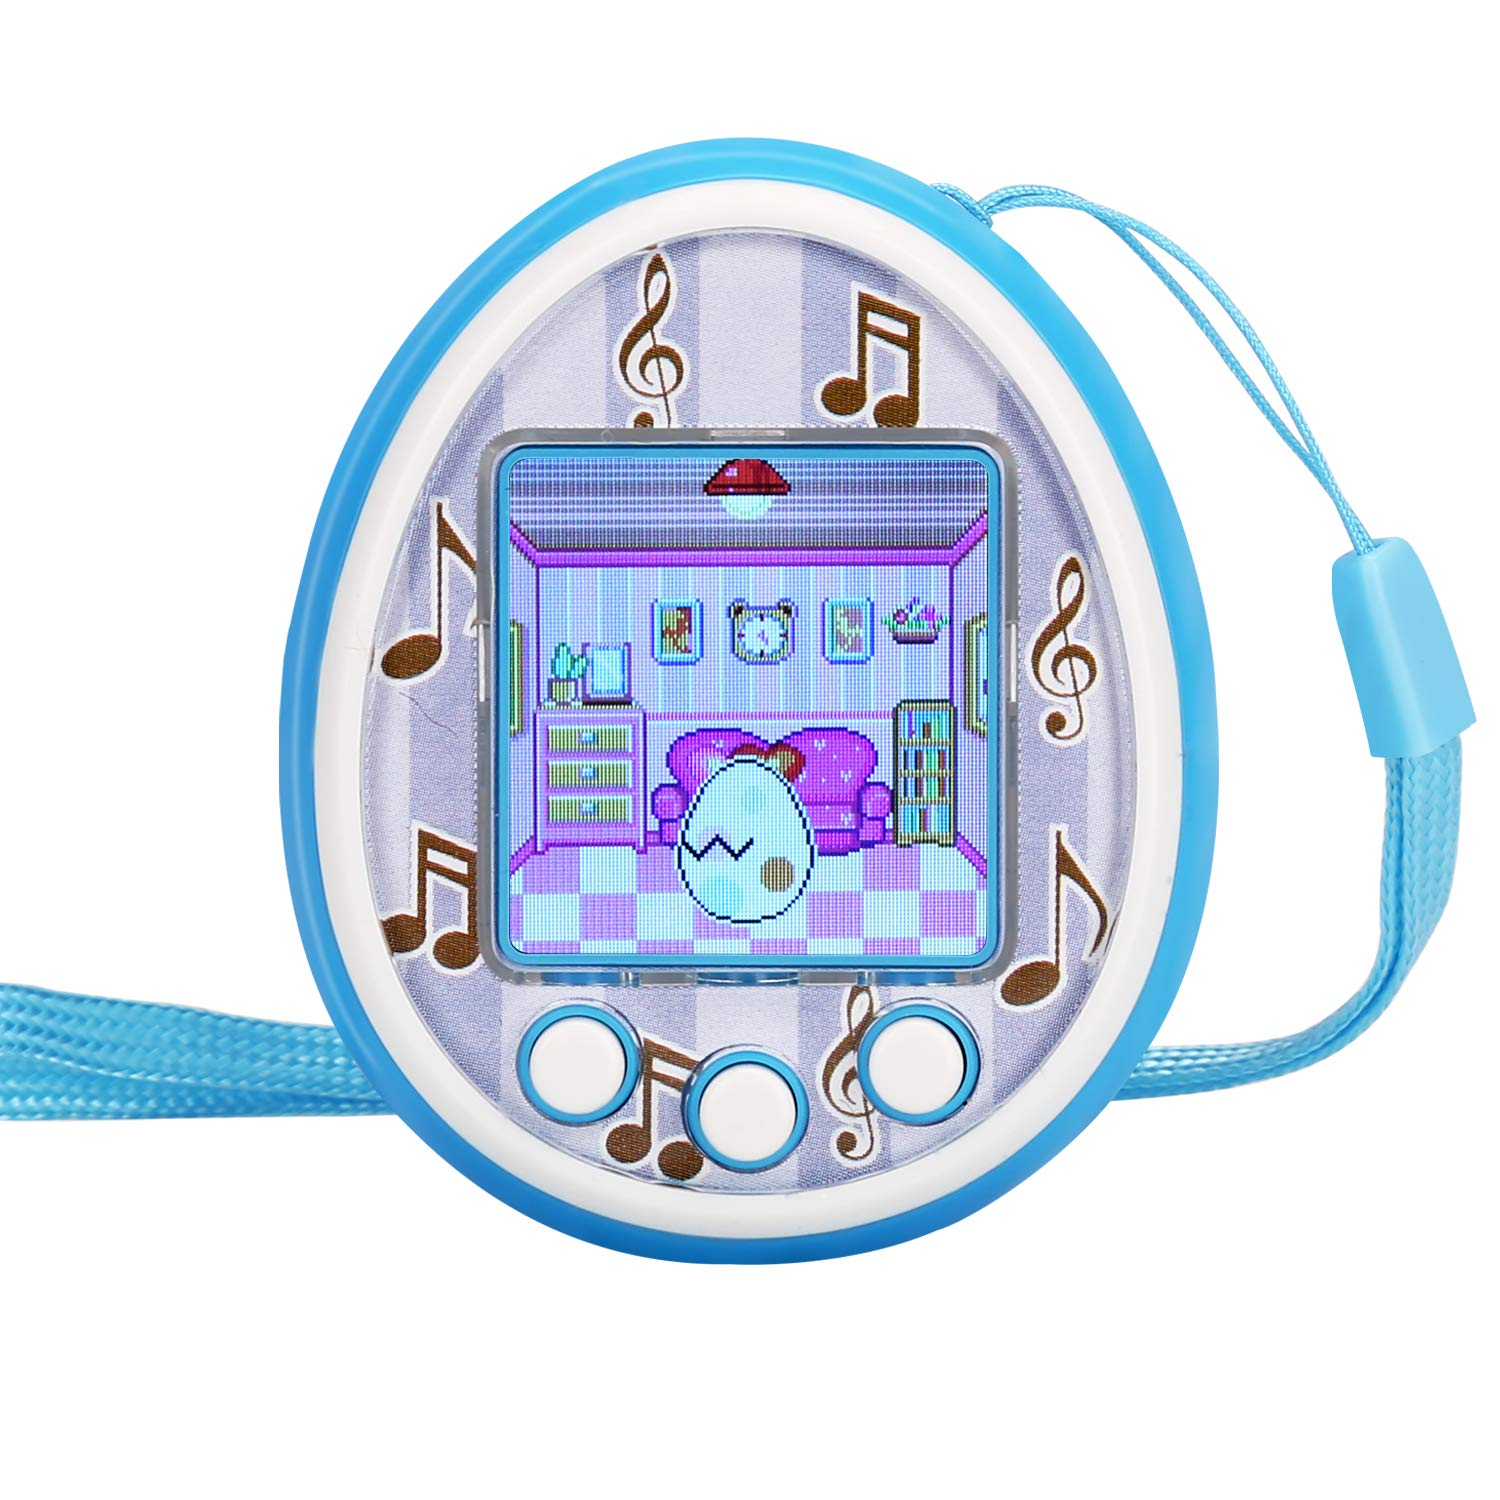 Fantasy Kids Virtual Pet Game Machine Electronic controler Toys-(2019 HD Color Screen,Wireless Interaction,USB Rechargeable,Over 30 Kinds of Gameplay,Toy Gifts for Boys Girls Toddlers(Blue)